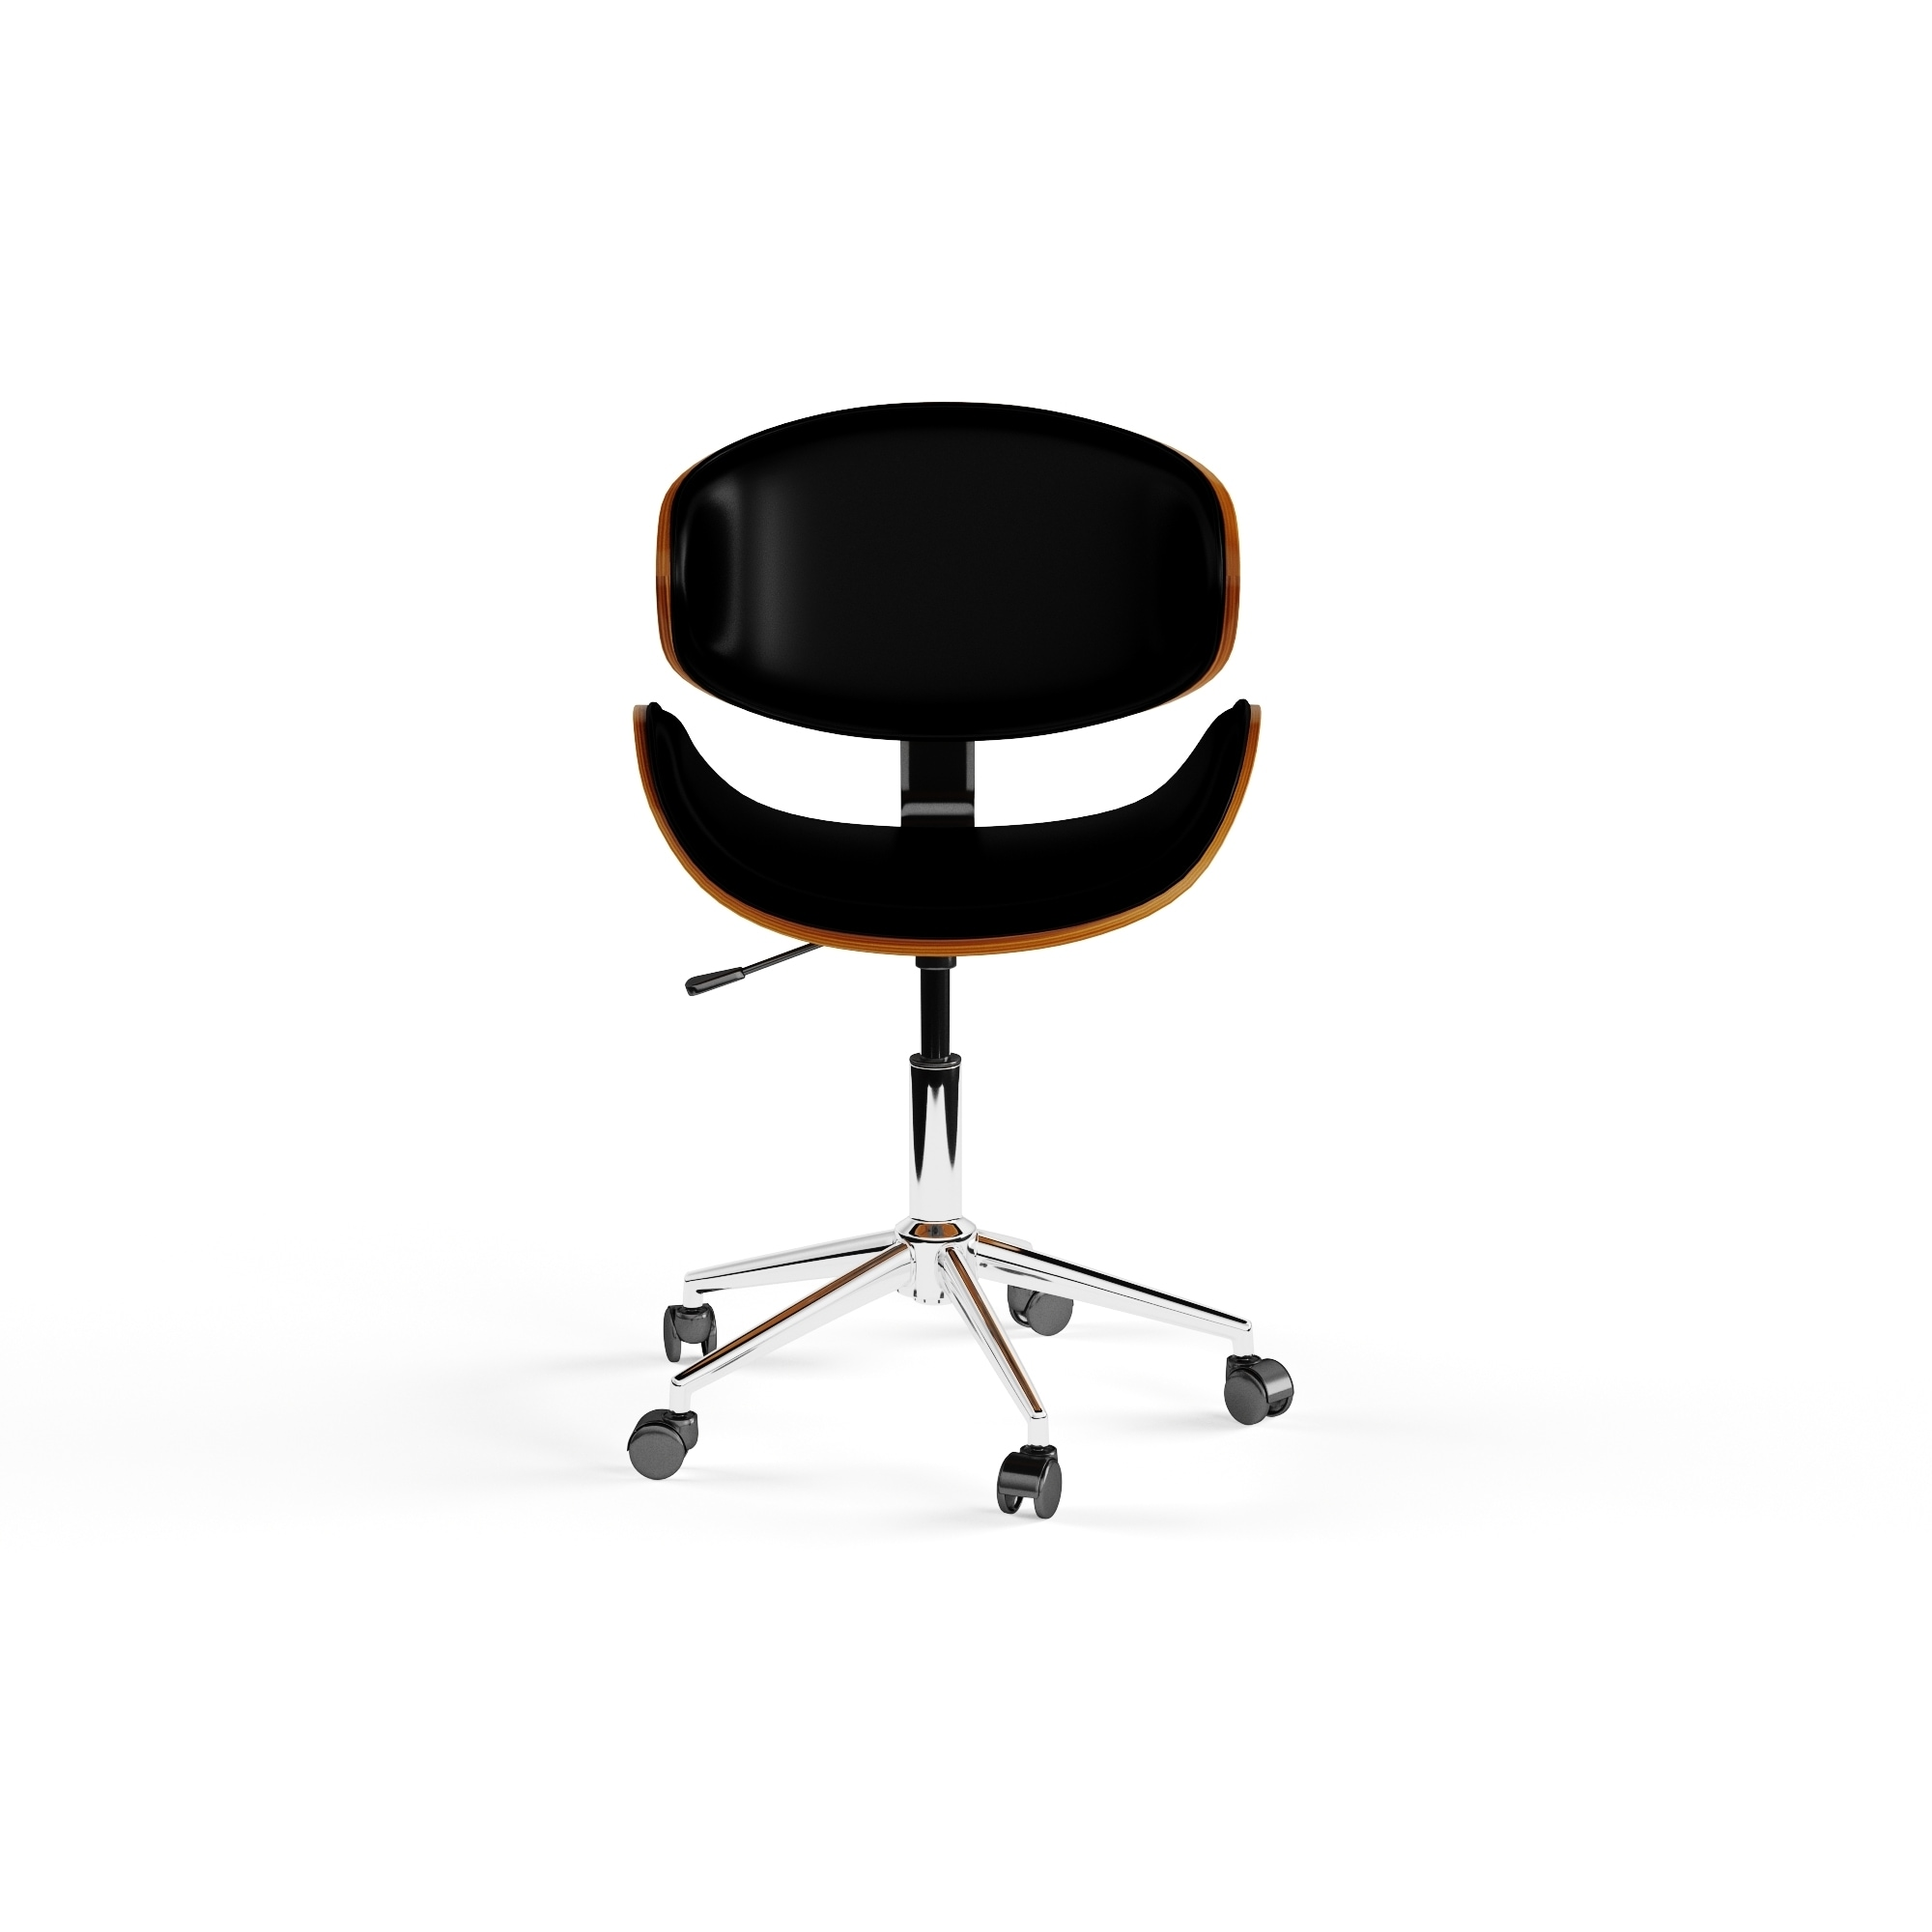 Shop Carson Carrington Malmo Black Wood Office Chair On Sale Chic Original Hovering Free Shipping Today 19473327